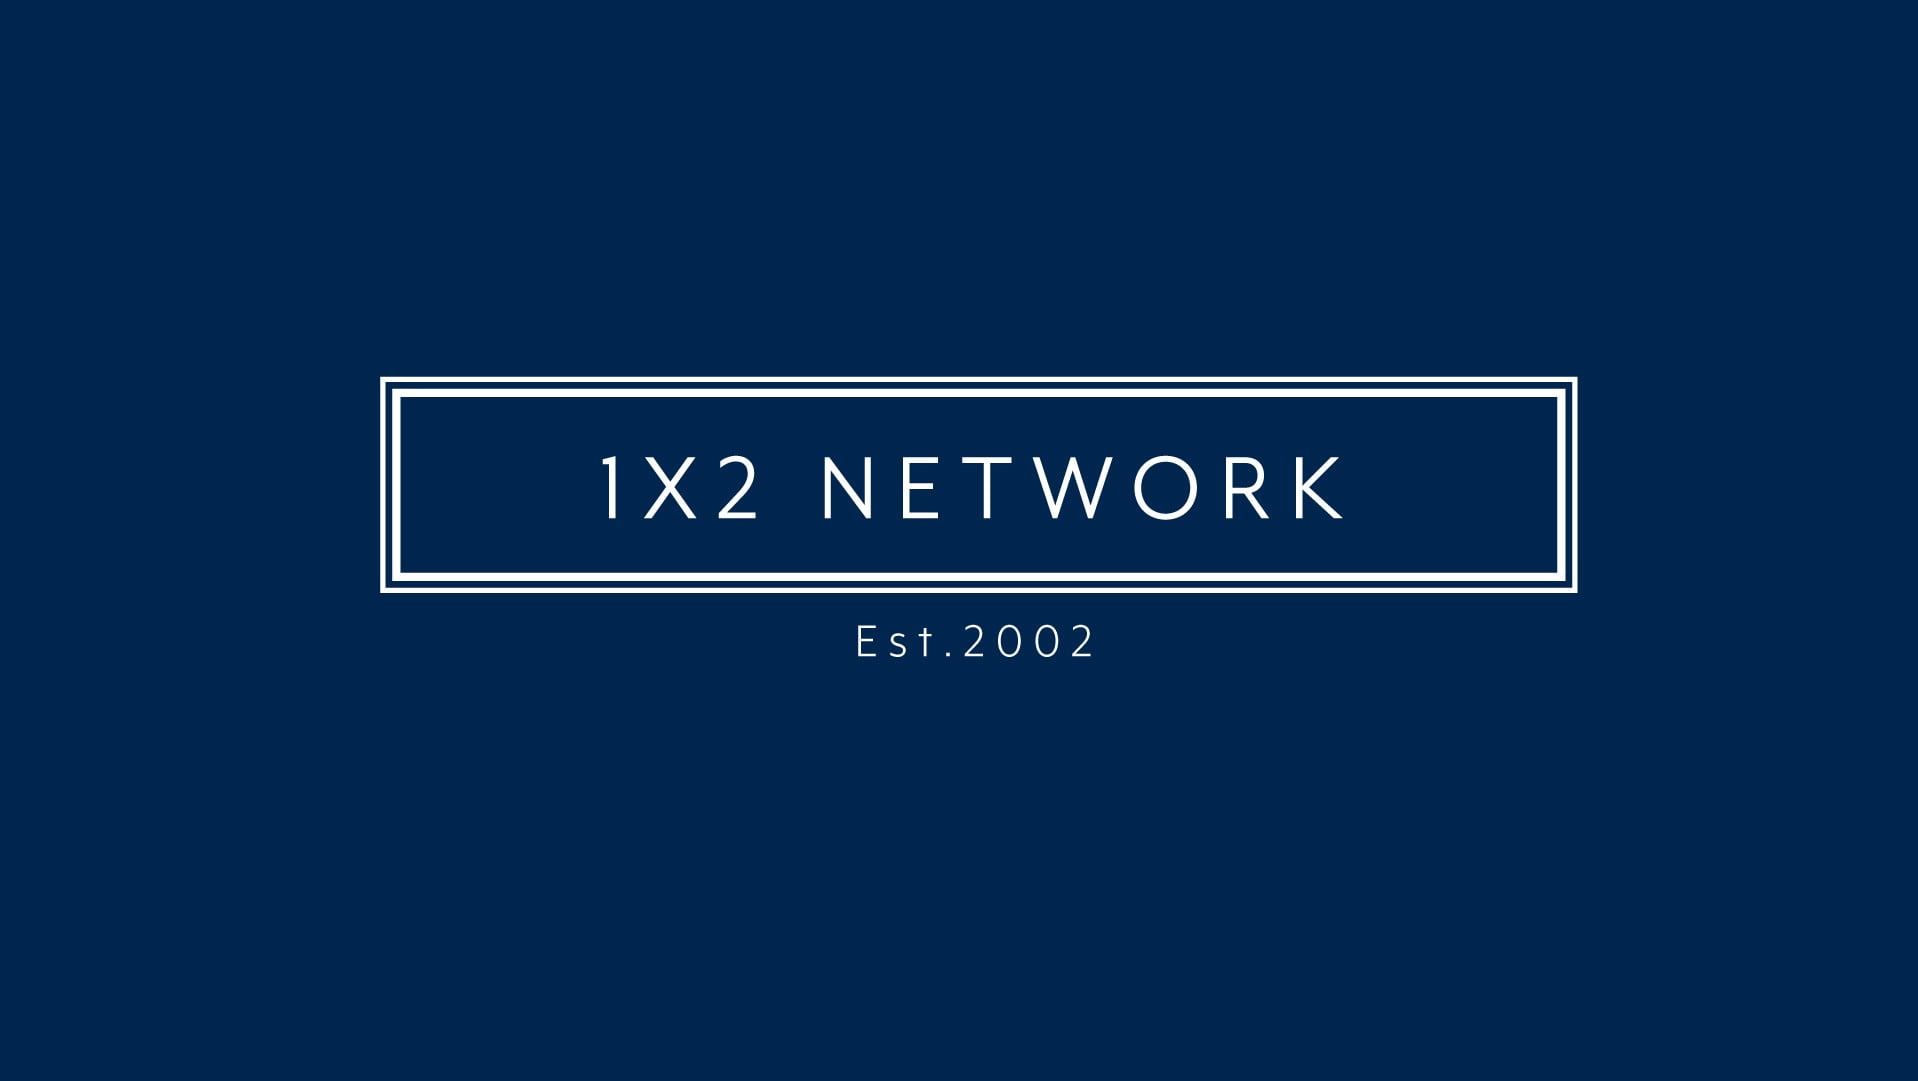 1X2 Network Increases LatAm Market With BetWarrior